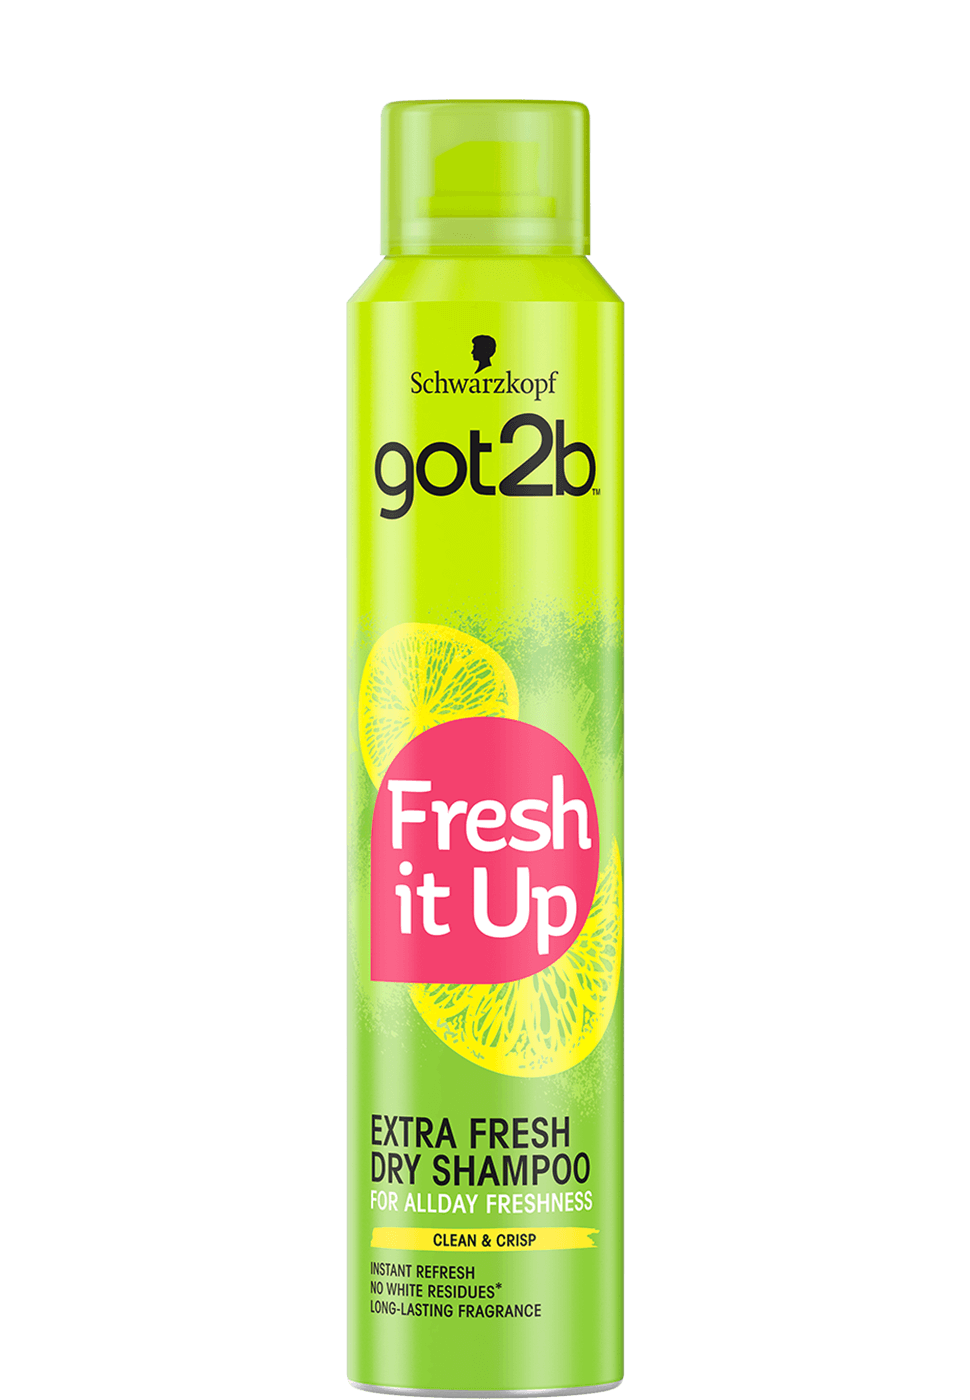 got2b_com_fresh_it_up_clean_crisp_970x1400